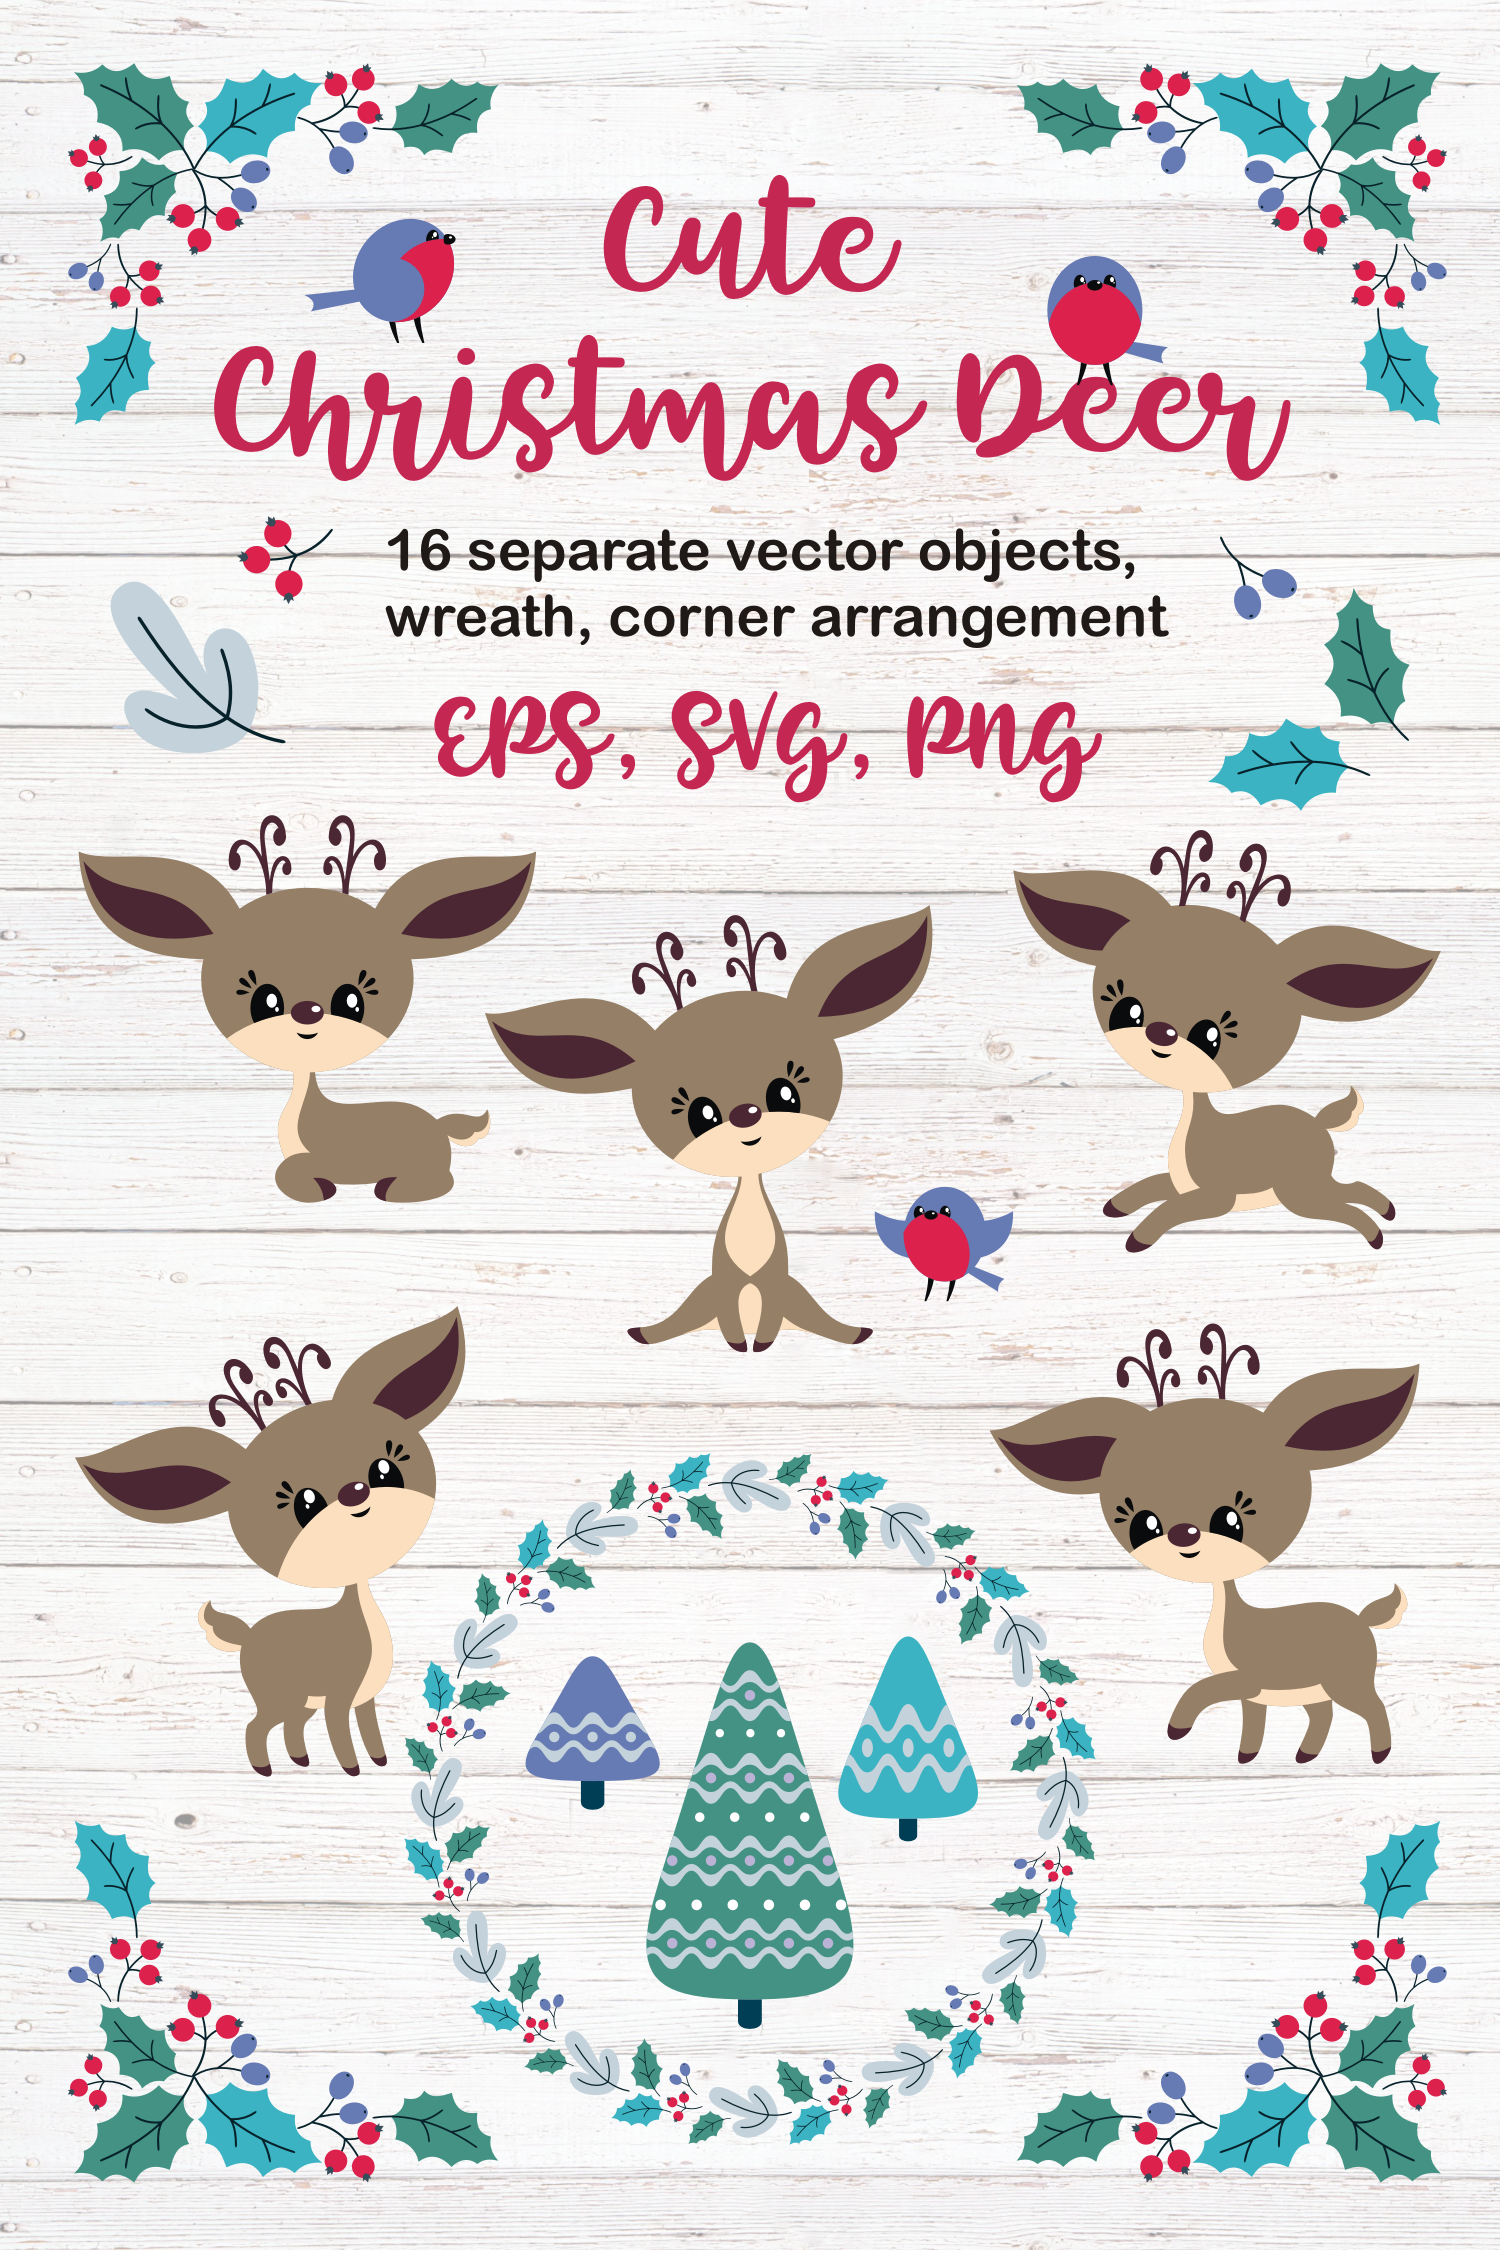 Cute Christmas Deer. Vector cliparts. example image 5